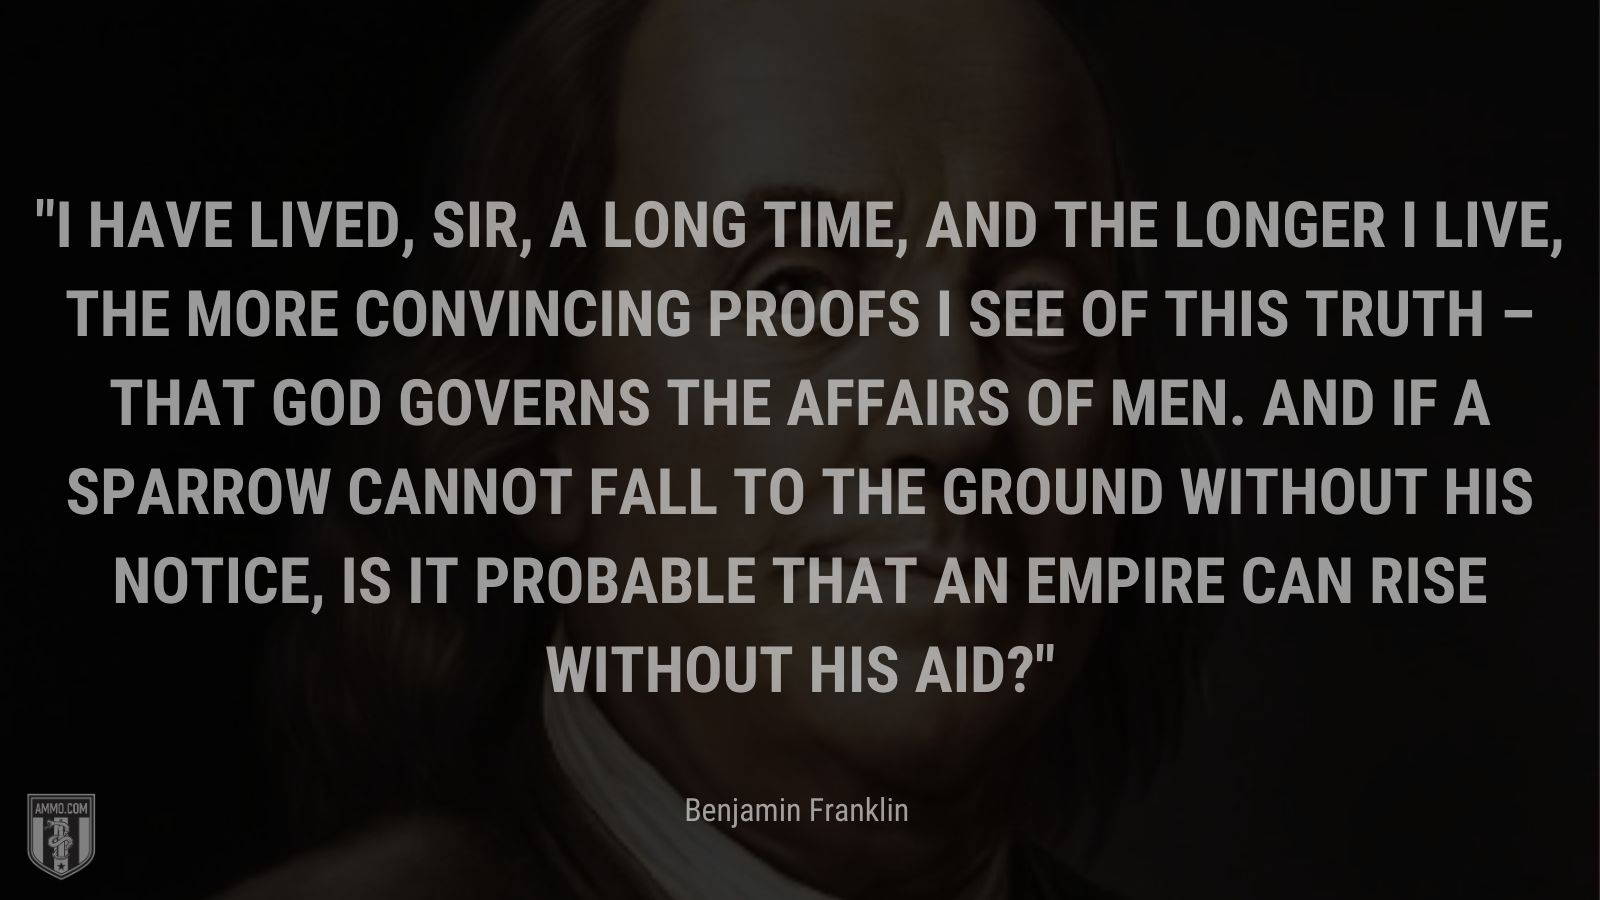 """""""I have lived, Sir, a long time, and the longer I live, the more convincing proofs I see of this truth – that God Governs the affairs of men. And if a sparrow cannot fall to the ground without His notice, is it probable that an empire can rise without His aid?"""" - Benjamin Franklin"""